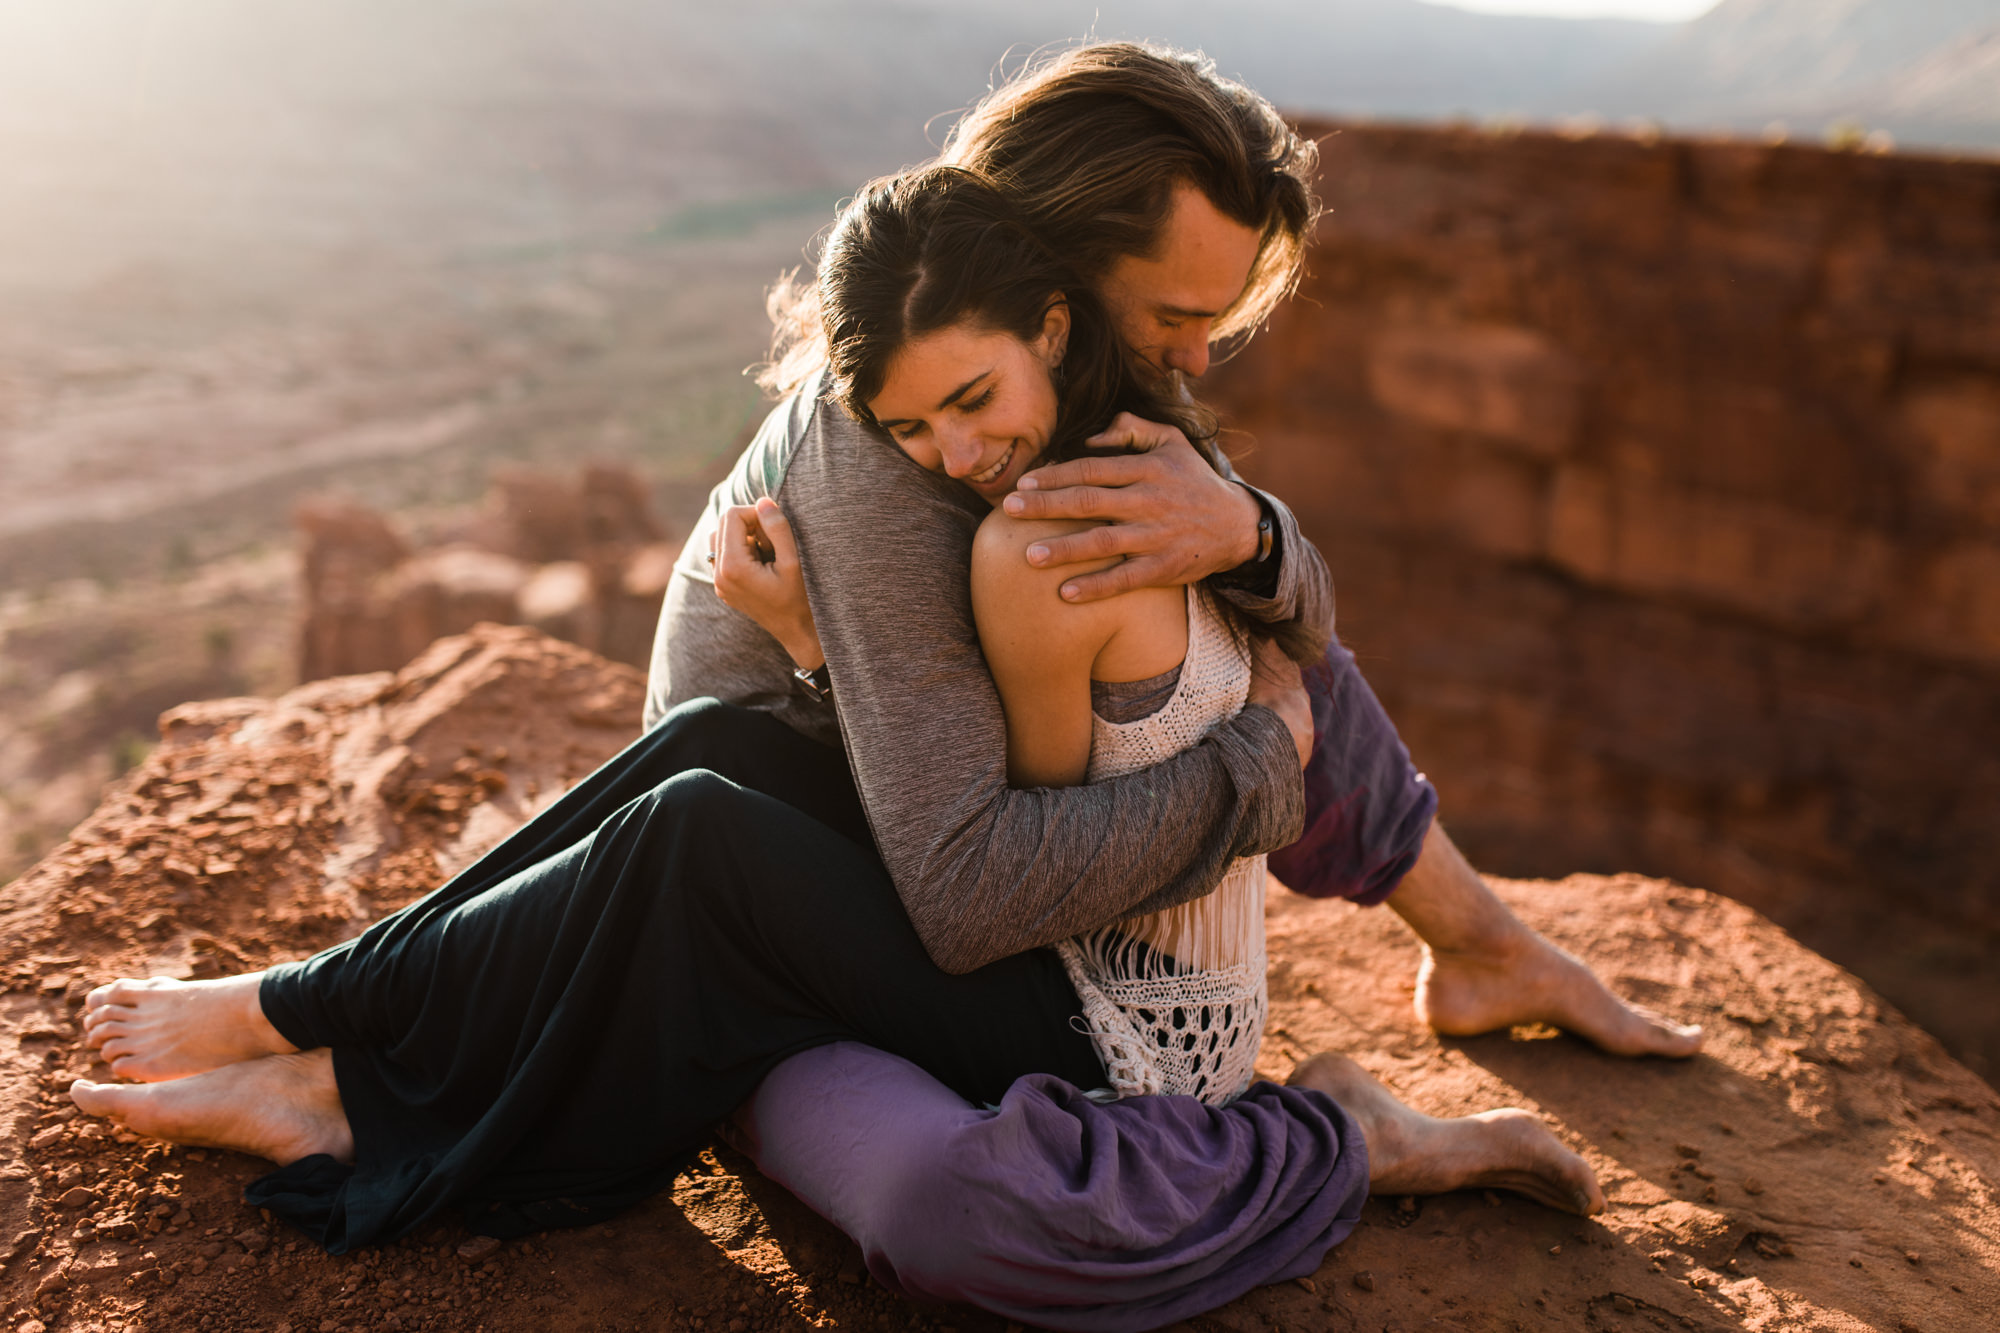 moab, utah adventure engagement session | destination engagement photo inspiration | utah adventure elopement photographers | the hearnes adventure photography | www.thehearnes.com